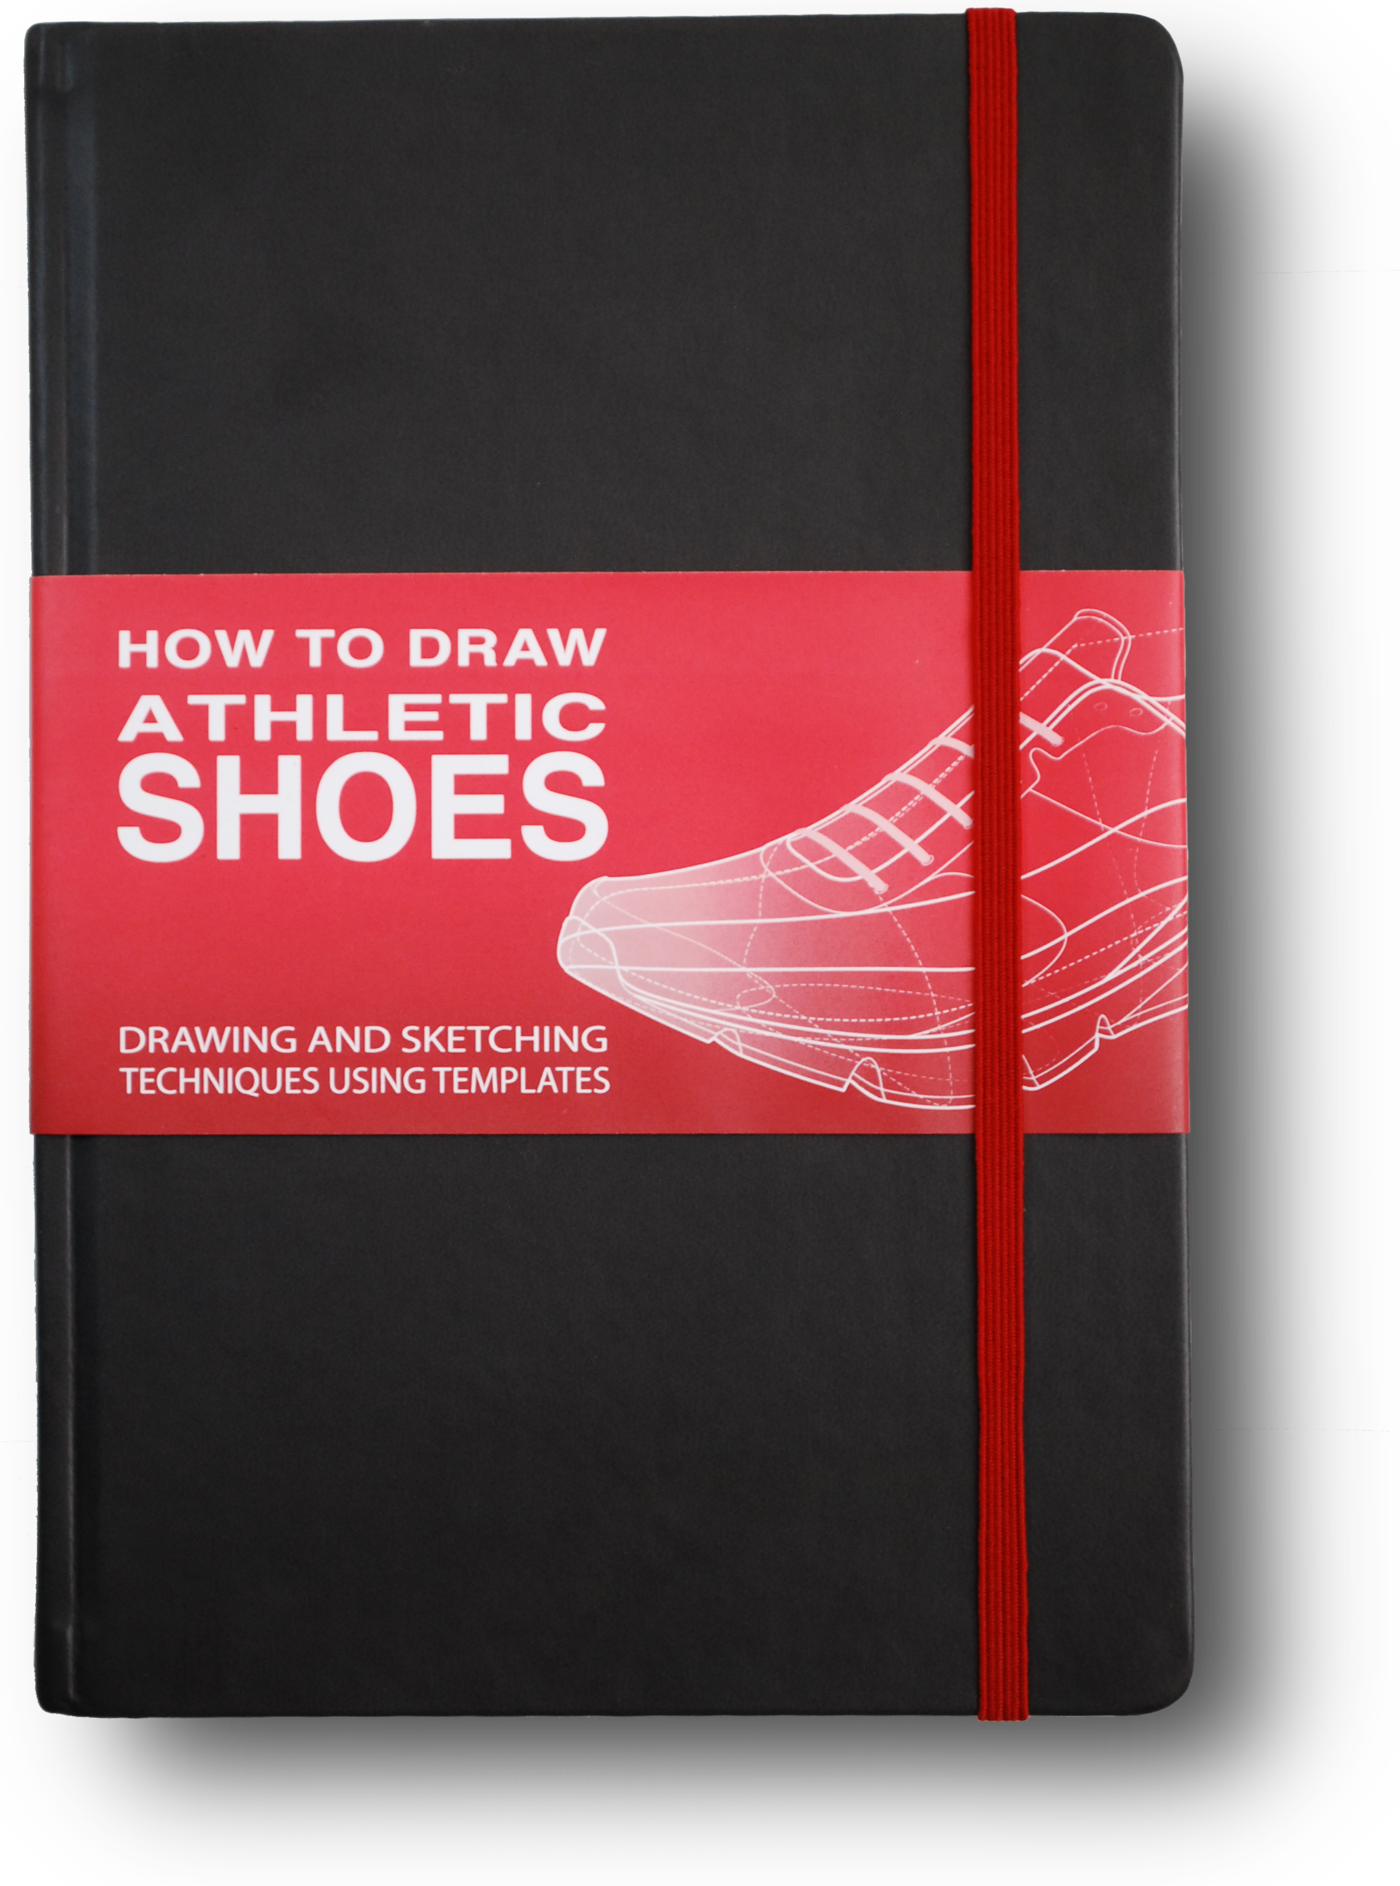 Sech drawing sketchbook. How to draw athletic